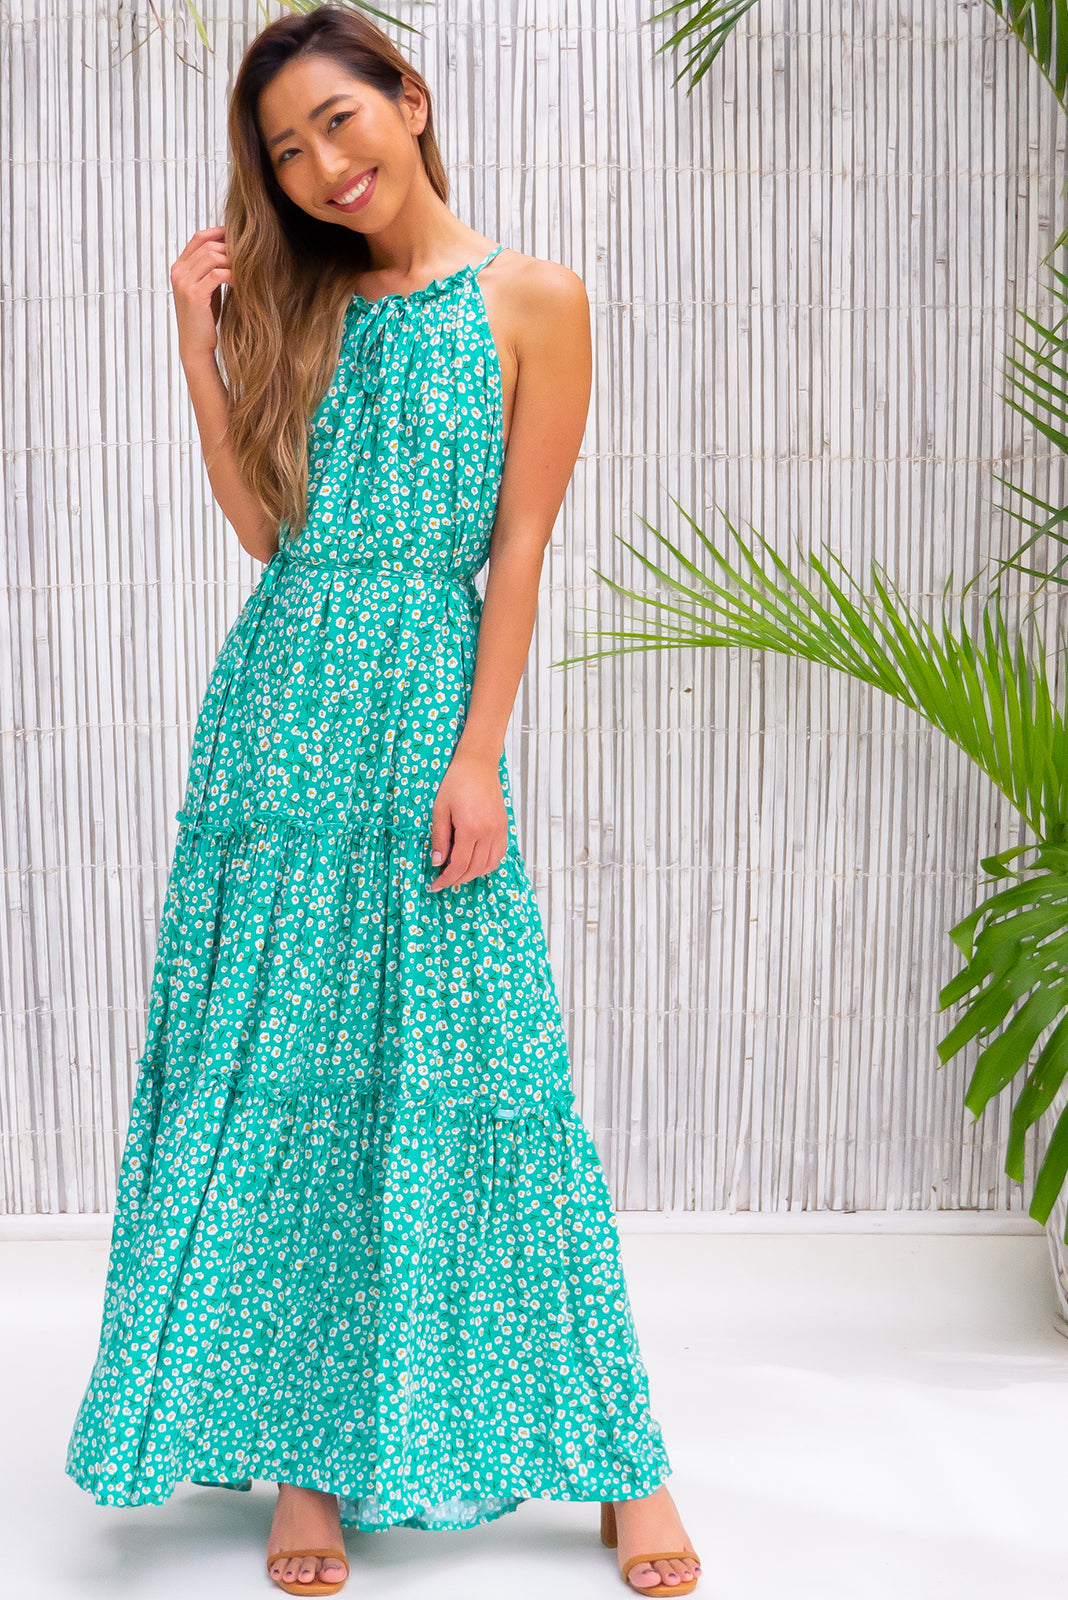 Tori Emerald Maxi Dress, such a gorgeous dress features strappy, high neckline, tie up keyhole in front neckline, waist tie, tiered skirt, emerald base with white ditzy floral print in woven 100% rayon.